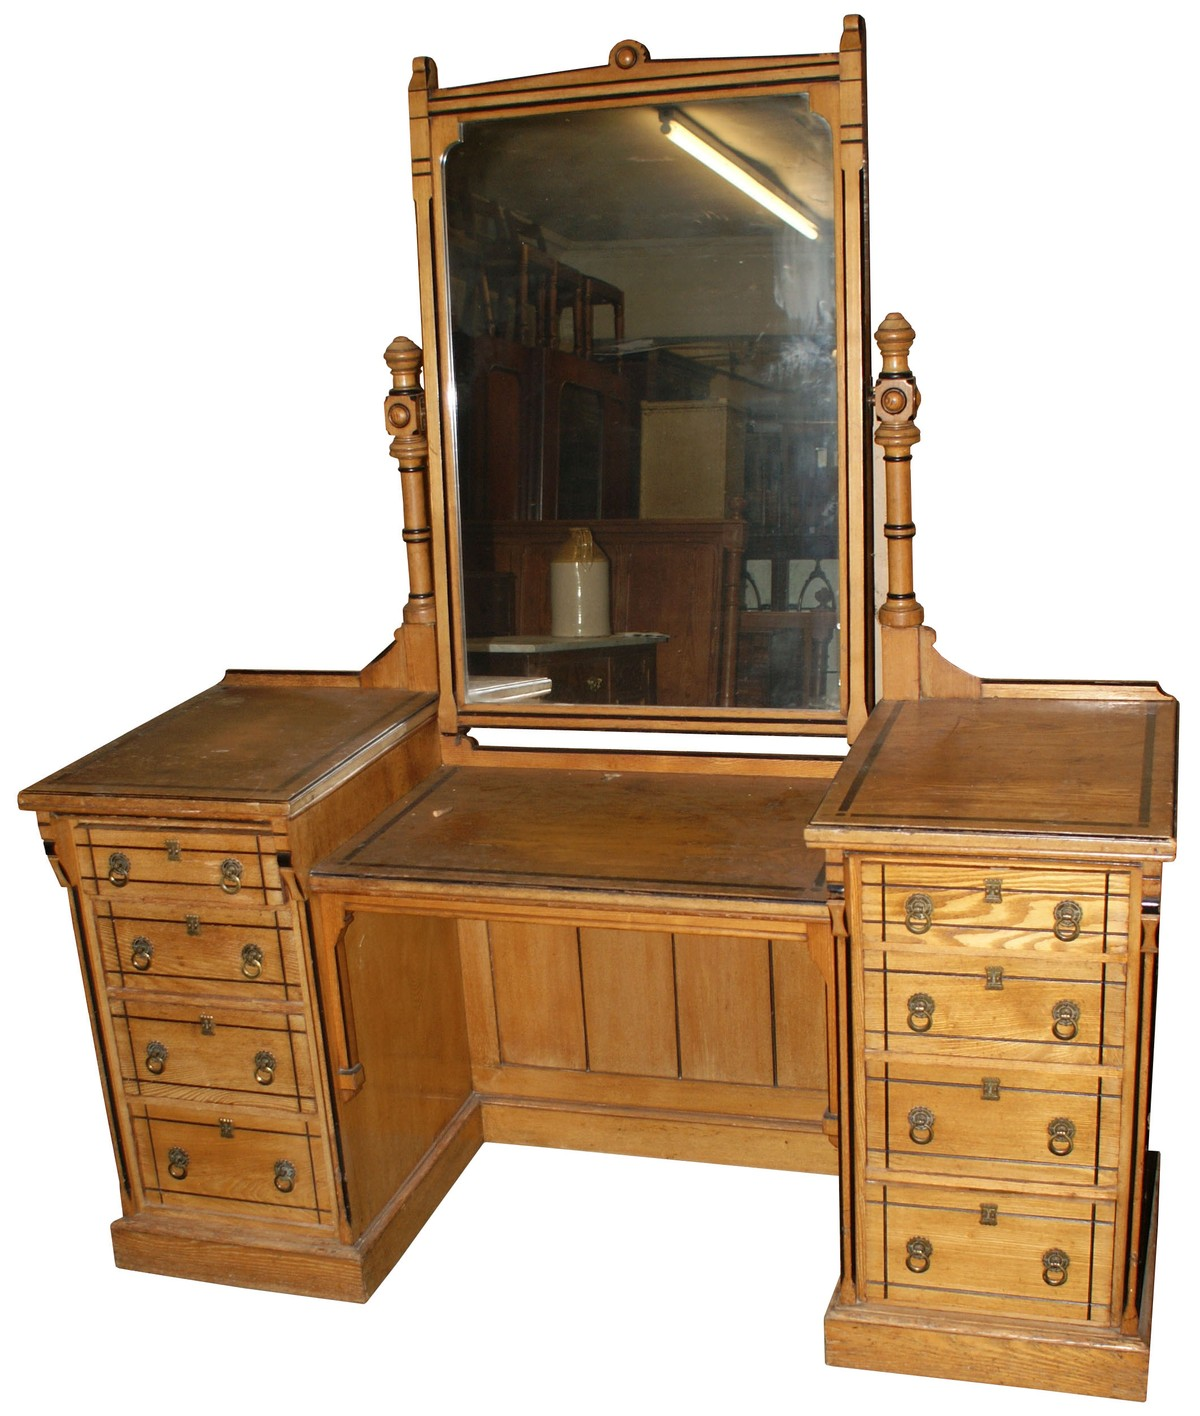 Antiques bazaar dressing tables large 3 door mirror fronted wardrobe with matching pedestal for Dressing mirror